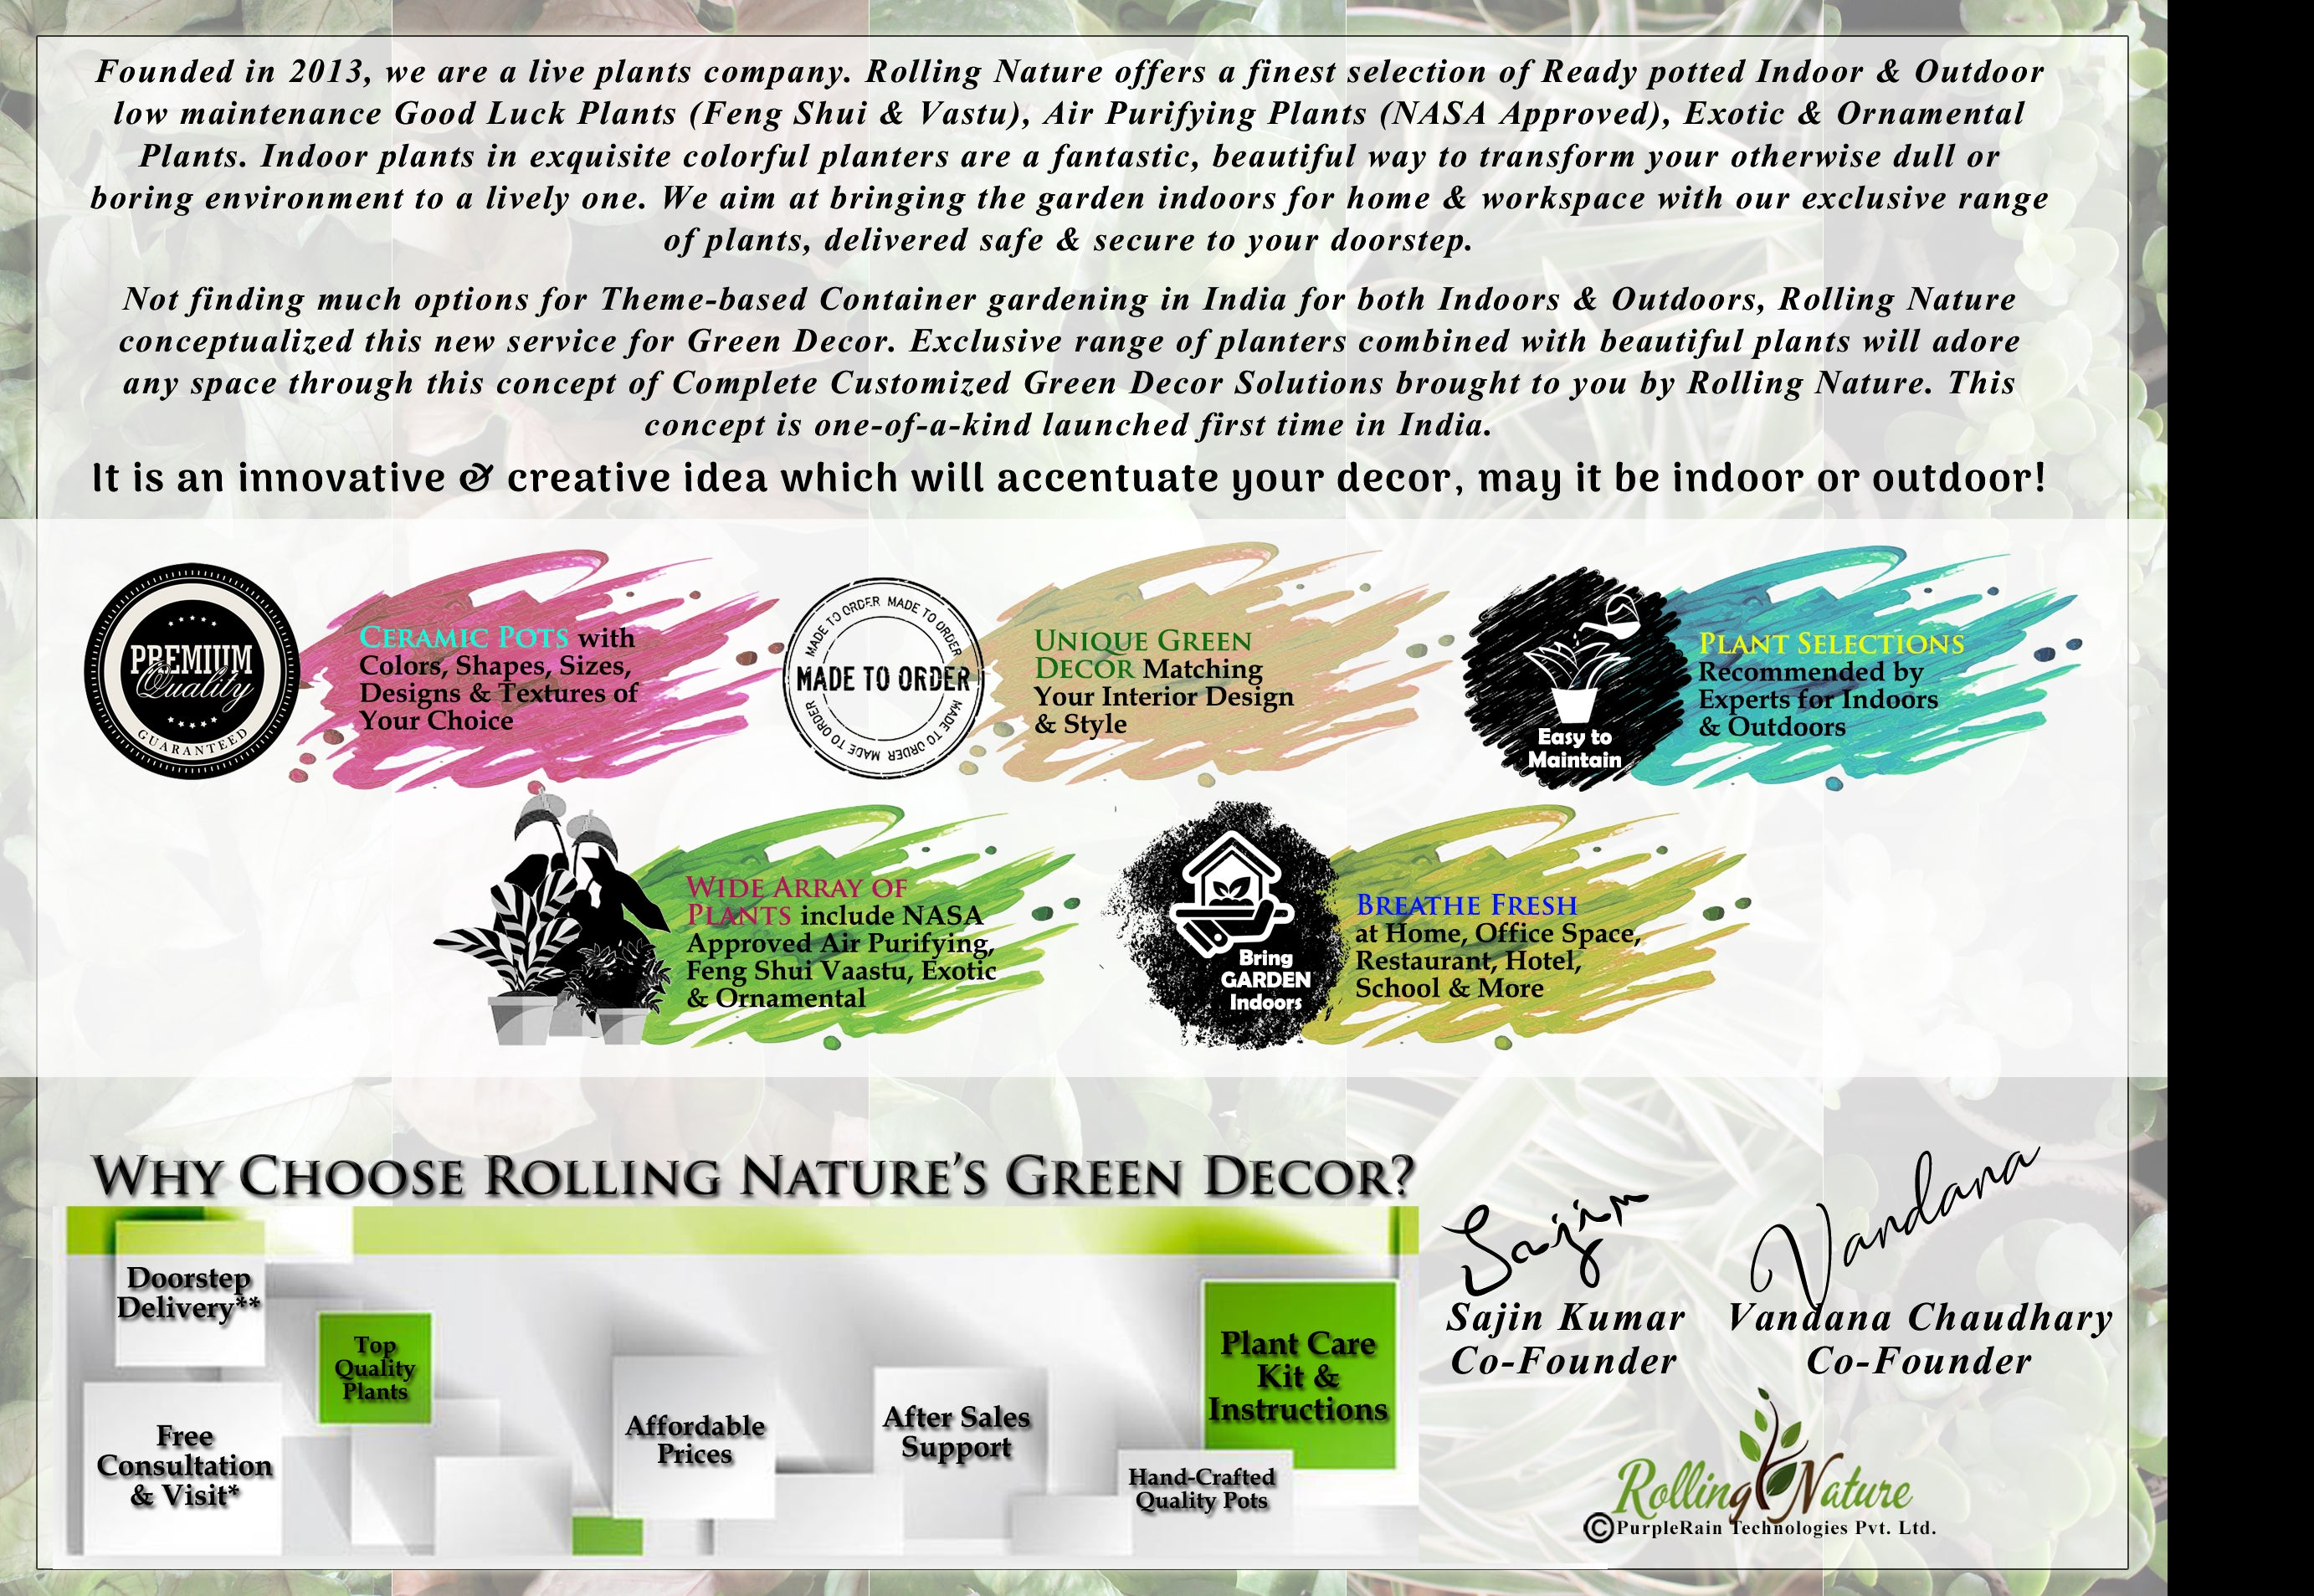 Rolling, Nature, Plants, Company, India, Online, Indoor, Best, Houseplants, Green, Gifts, Gifting, Decor, Good Luck, NASA, Feng Shui, Vandana, Chaudhary, Sajin, Kumar, Co-Founder, Founder, Pune